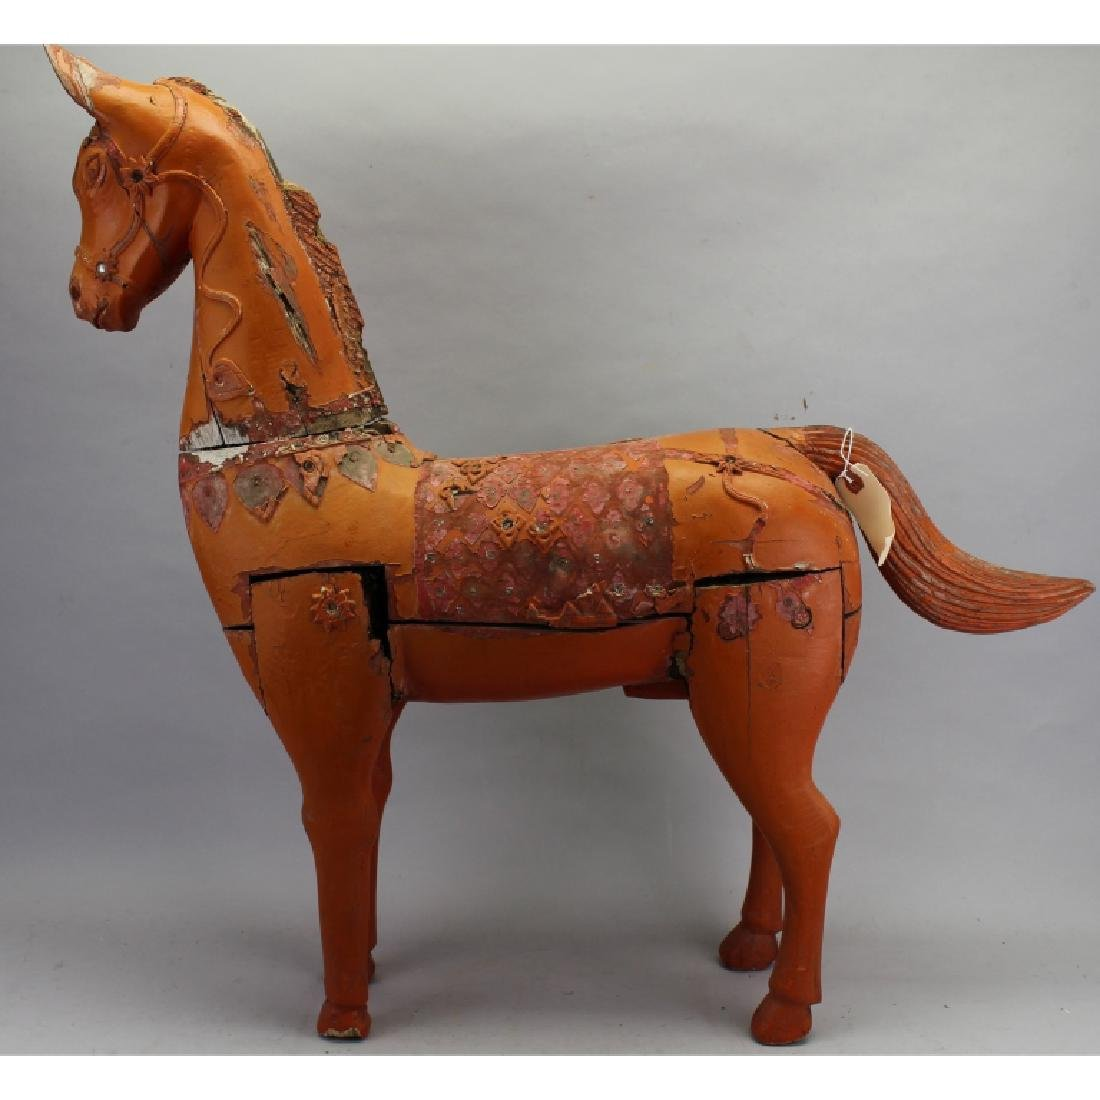 20th c. Carved Wooden Painted Horse